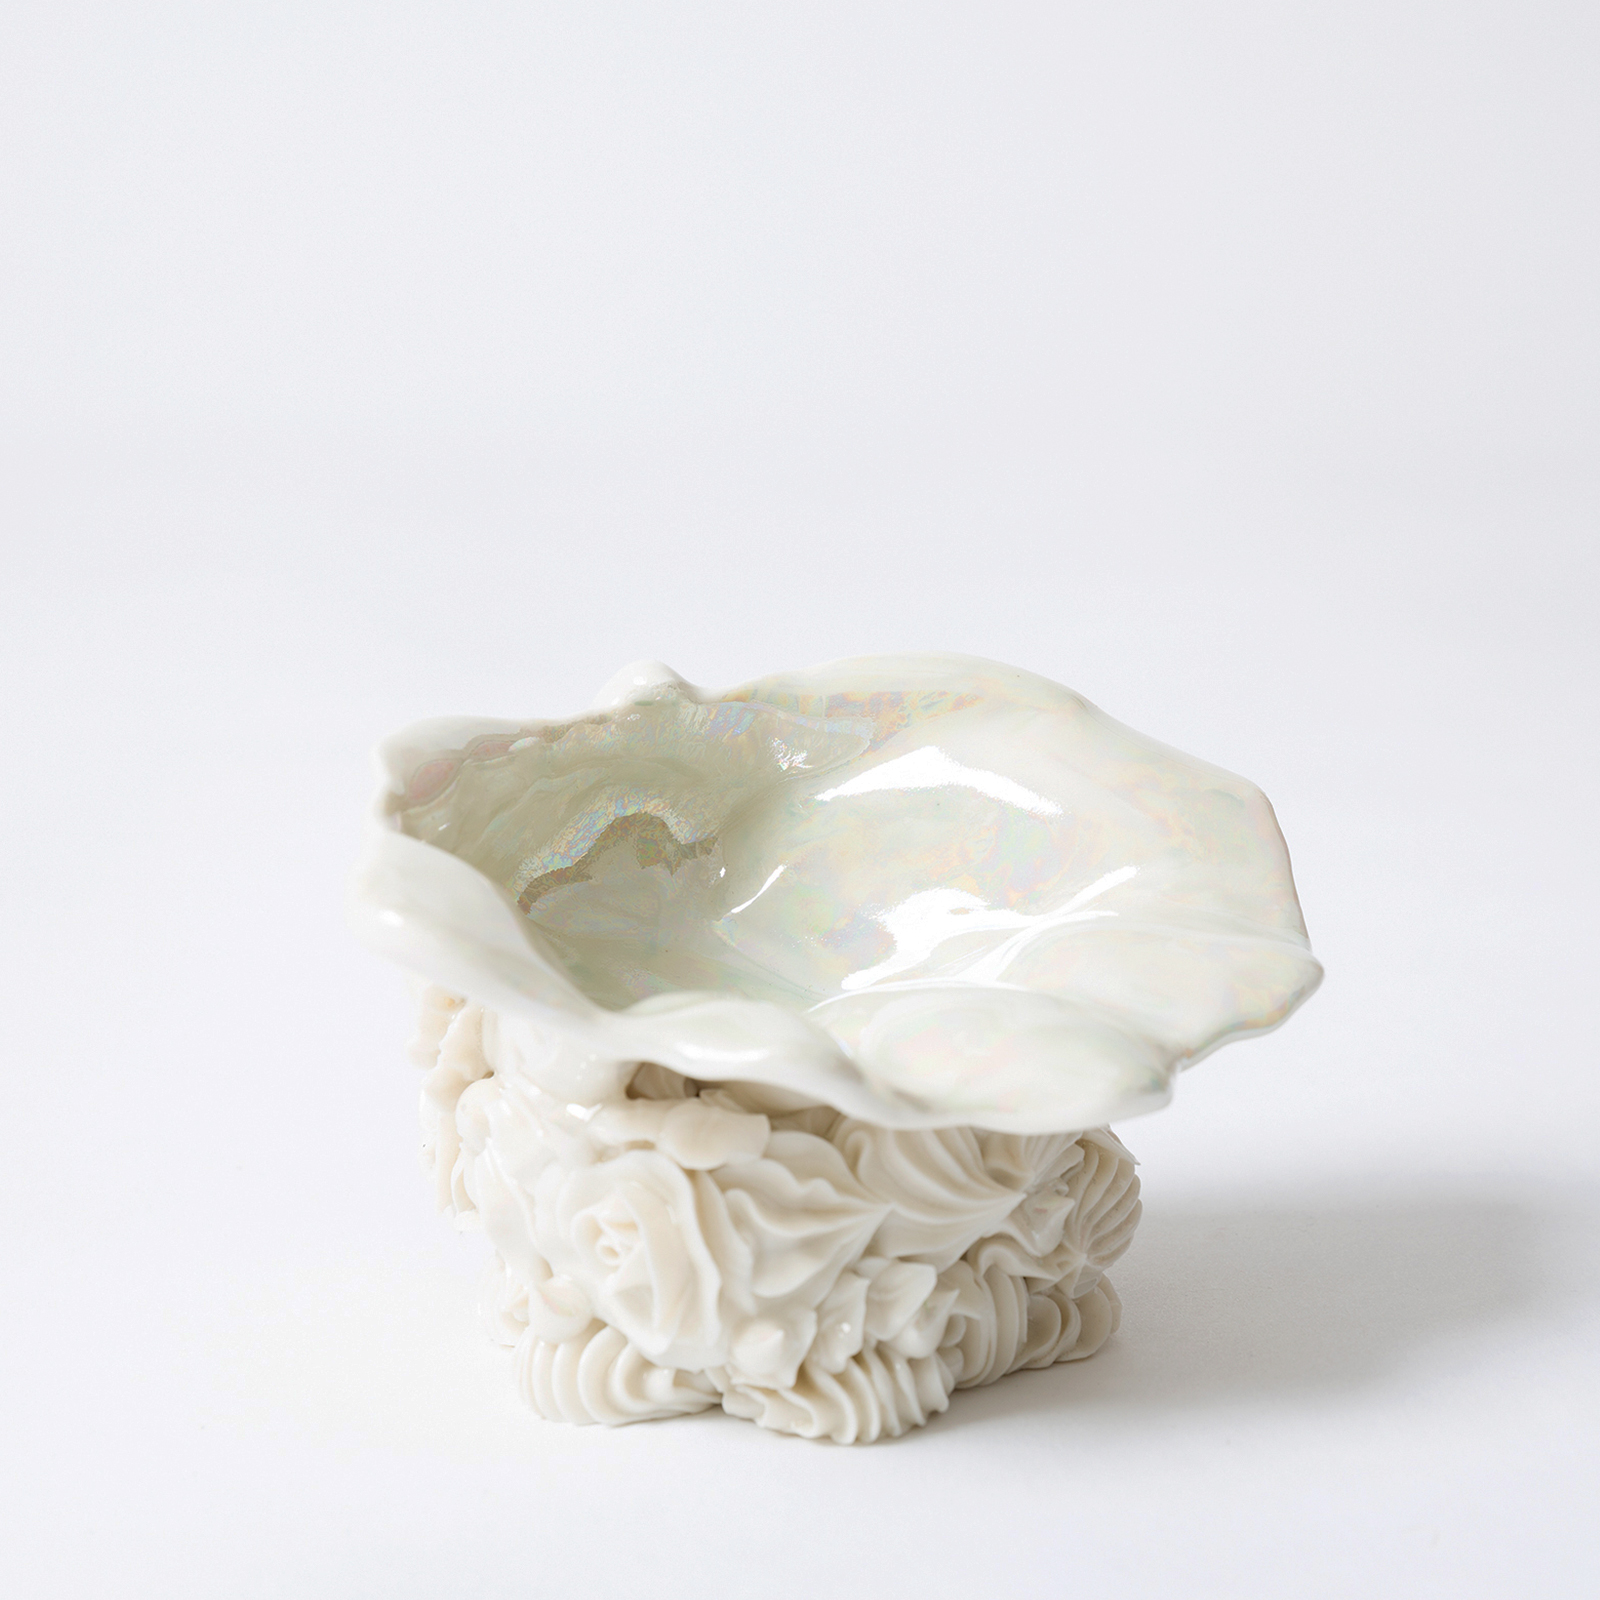 Shell Trinket Dish In Porcelain By Ebony Russell 2